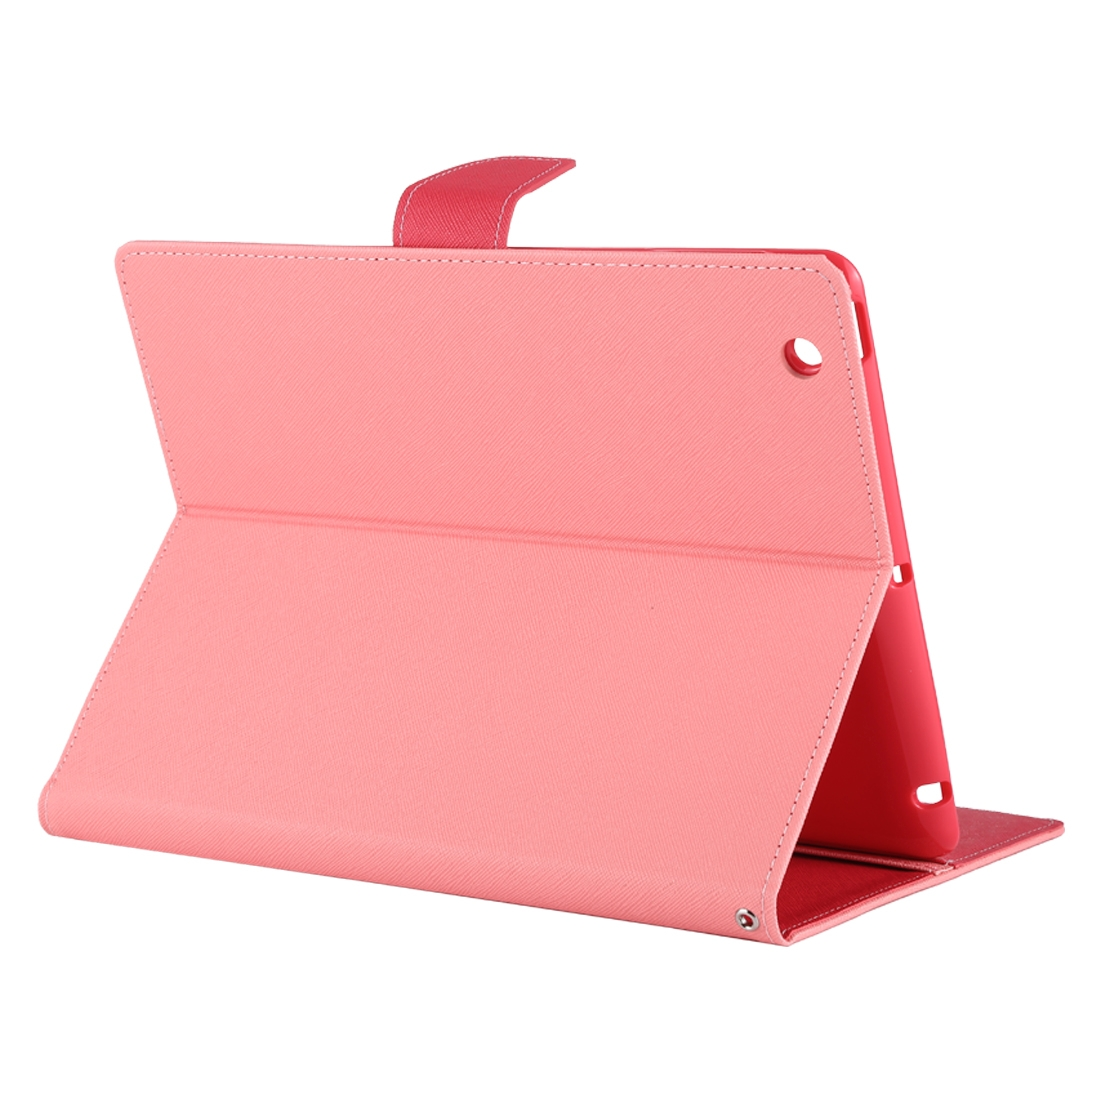 iPad 2 Case Fits iPad 2, 3, 4, Goospery Cross Textured Leather Case With Slim Profile (Pink)